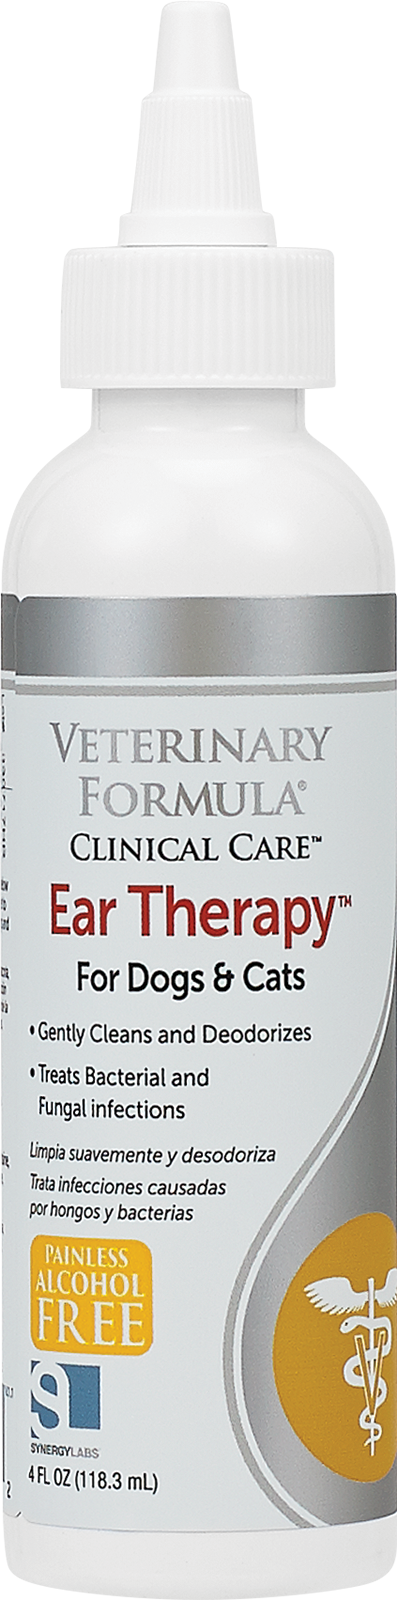 Ear Therapy For Dogs & Cats